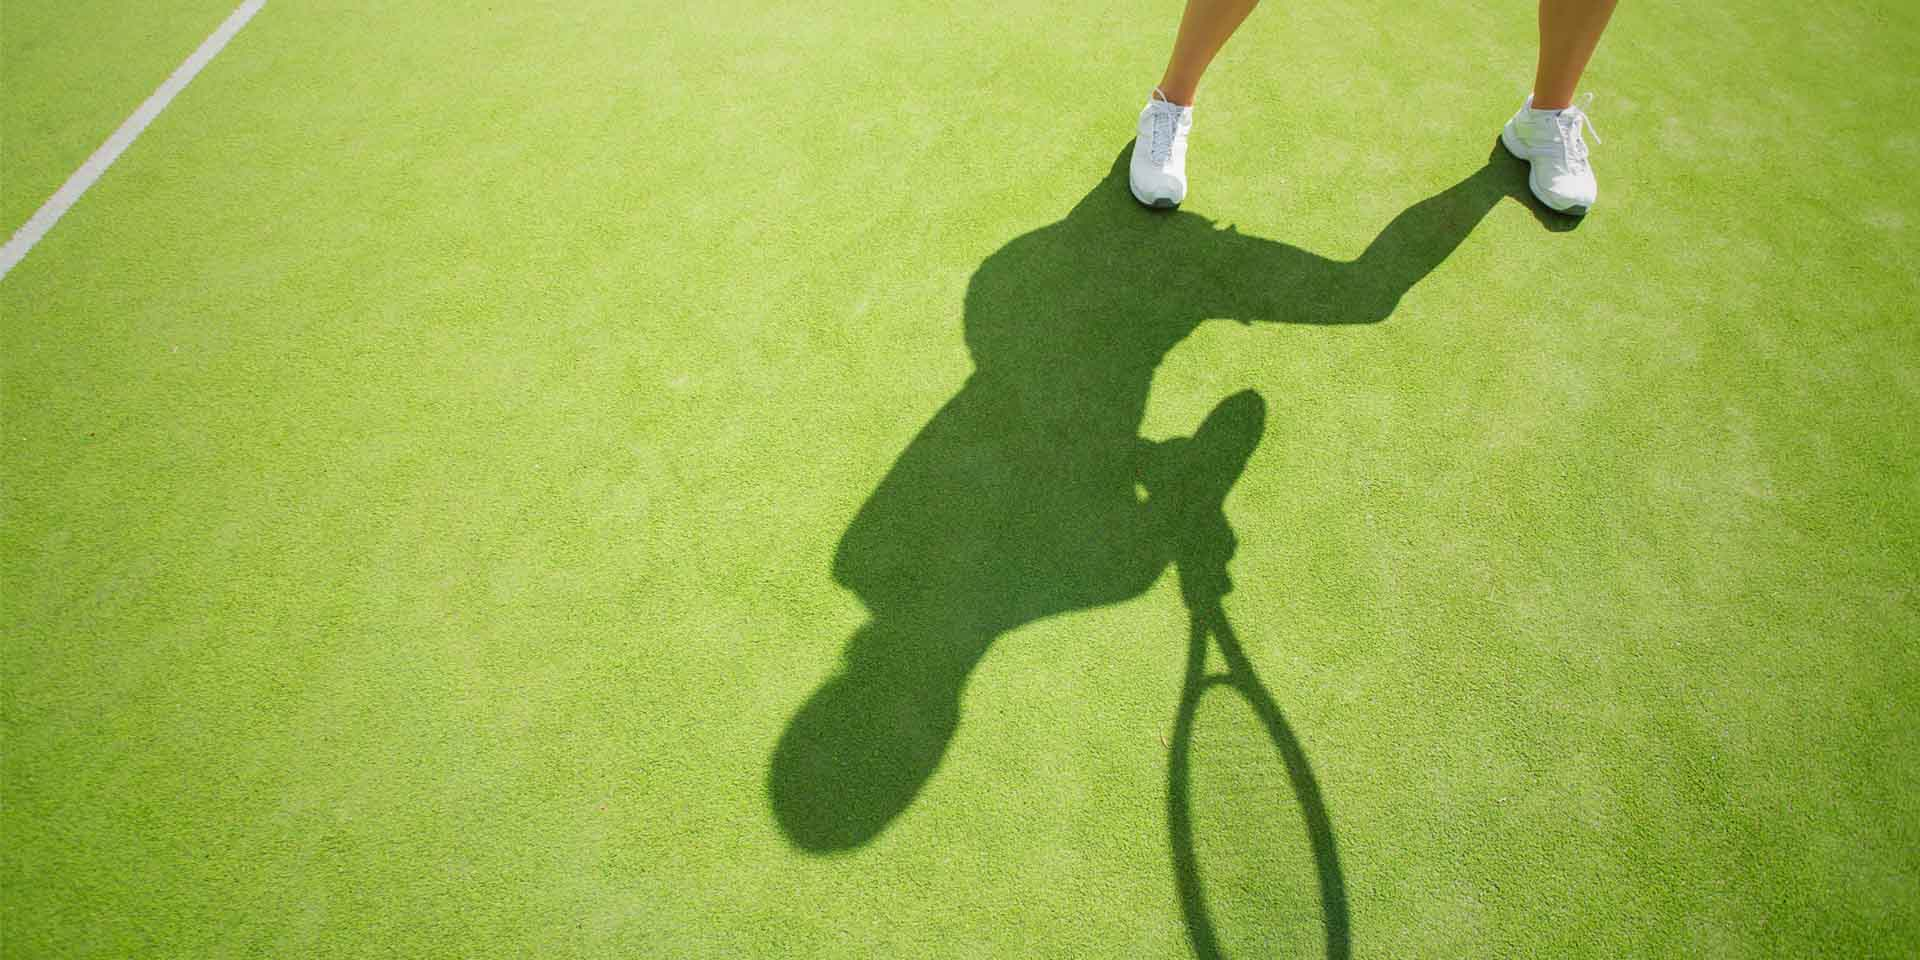 Tennis player's shadow.